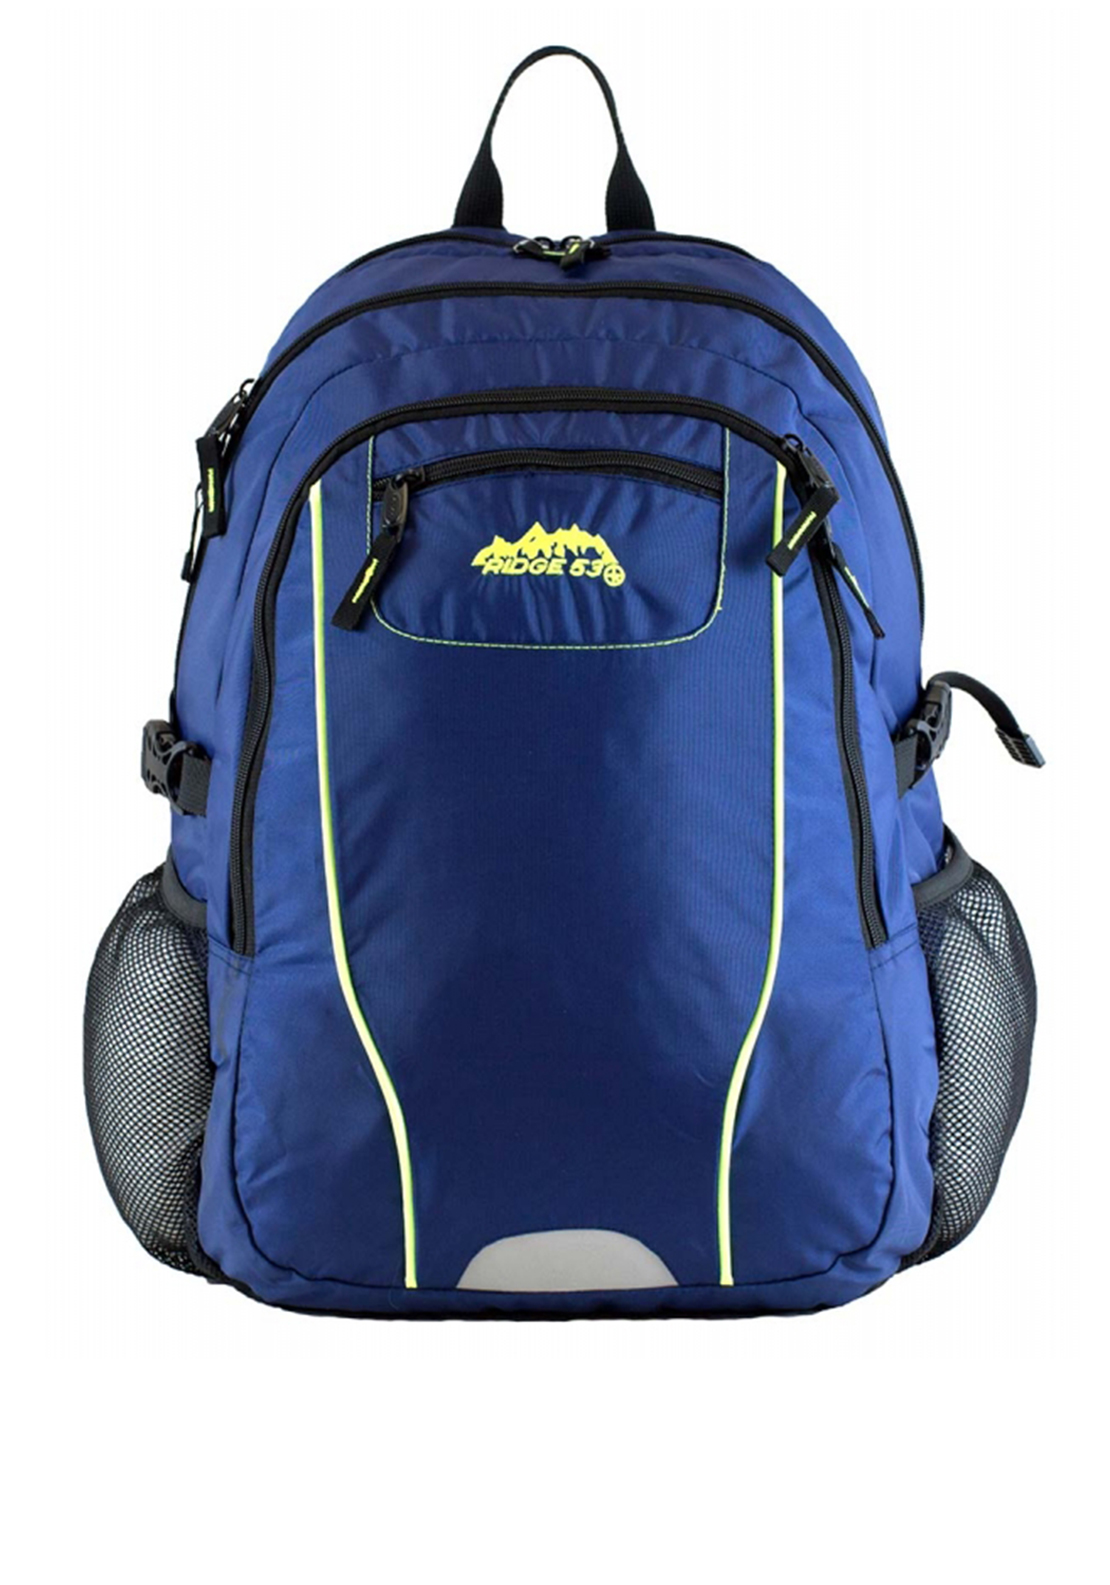 Ridge 53 Pearse Backpack School Bag, Navy